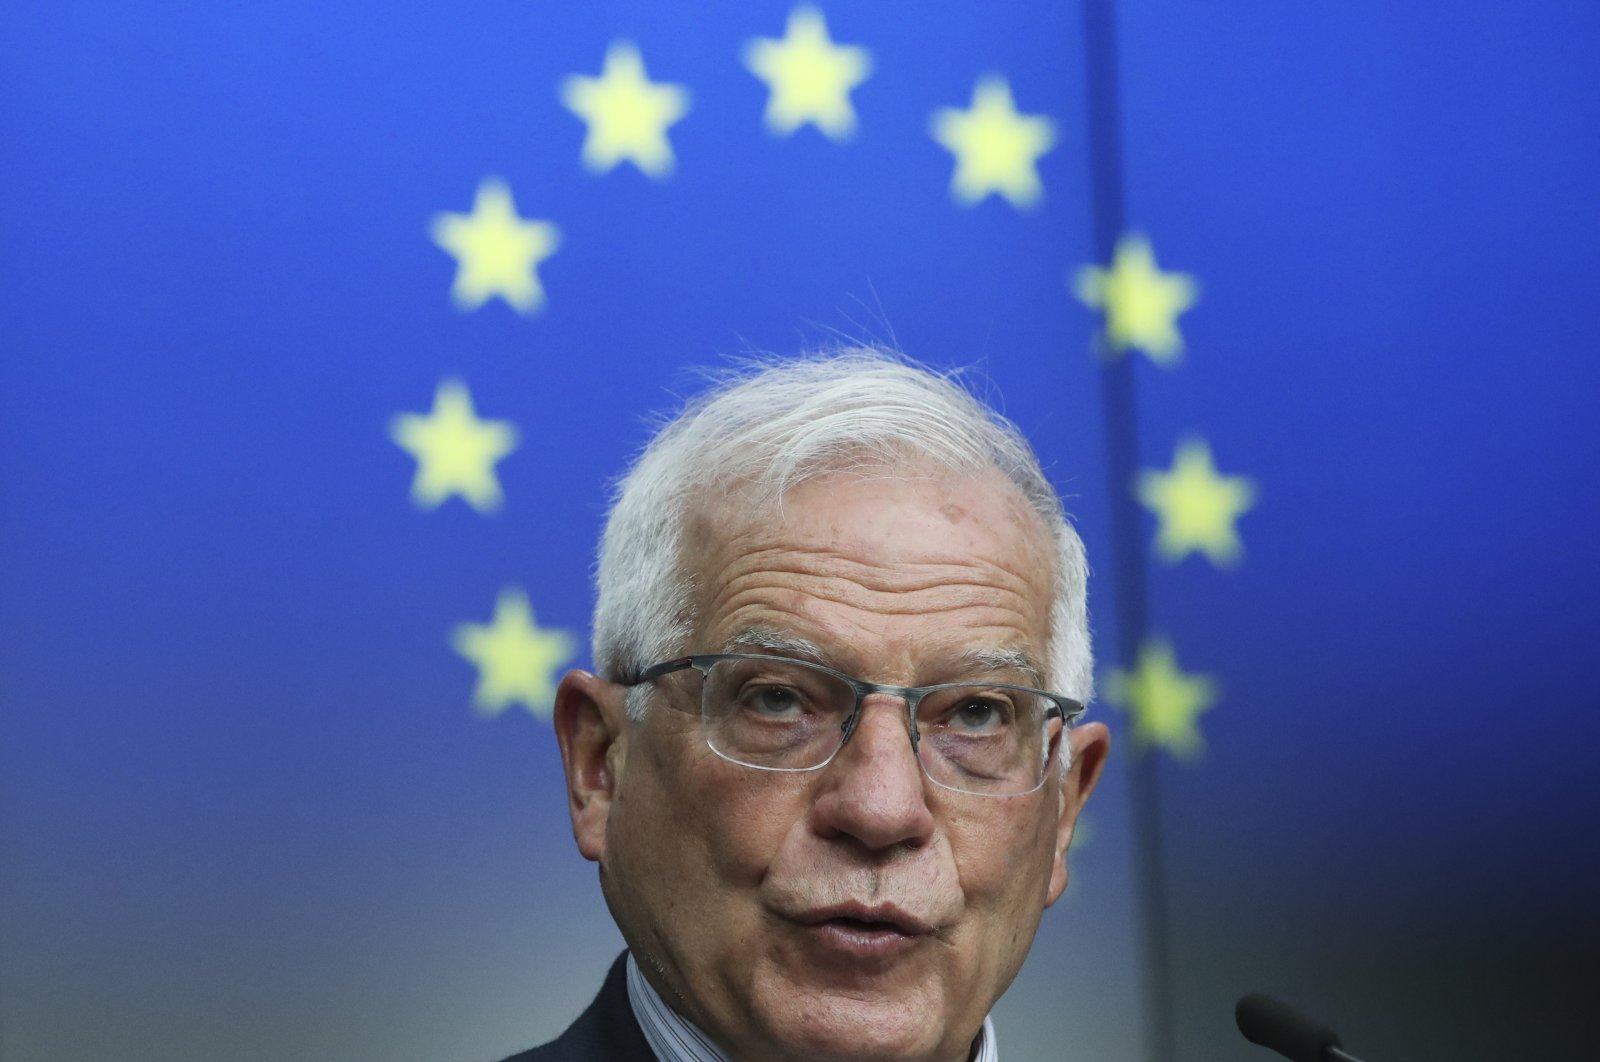 European Union Foreign Policy Chief Josep Borrell speaks during a news conference in Brussels, Belgium, March 16, 2021. (AP Photo)